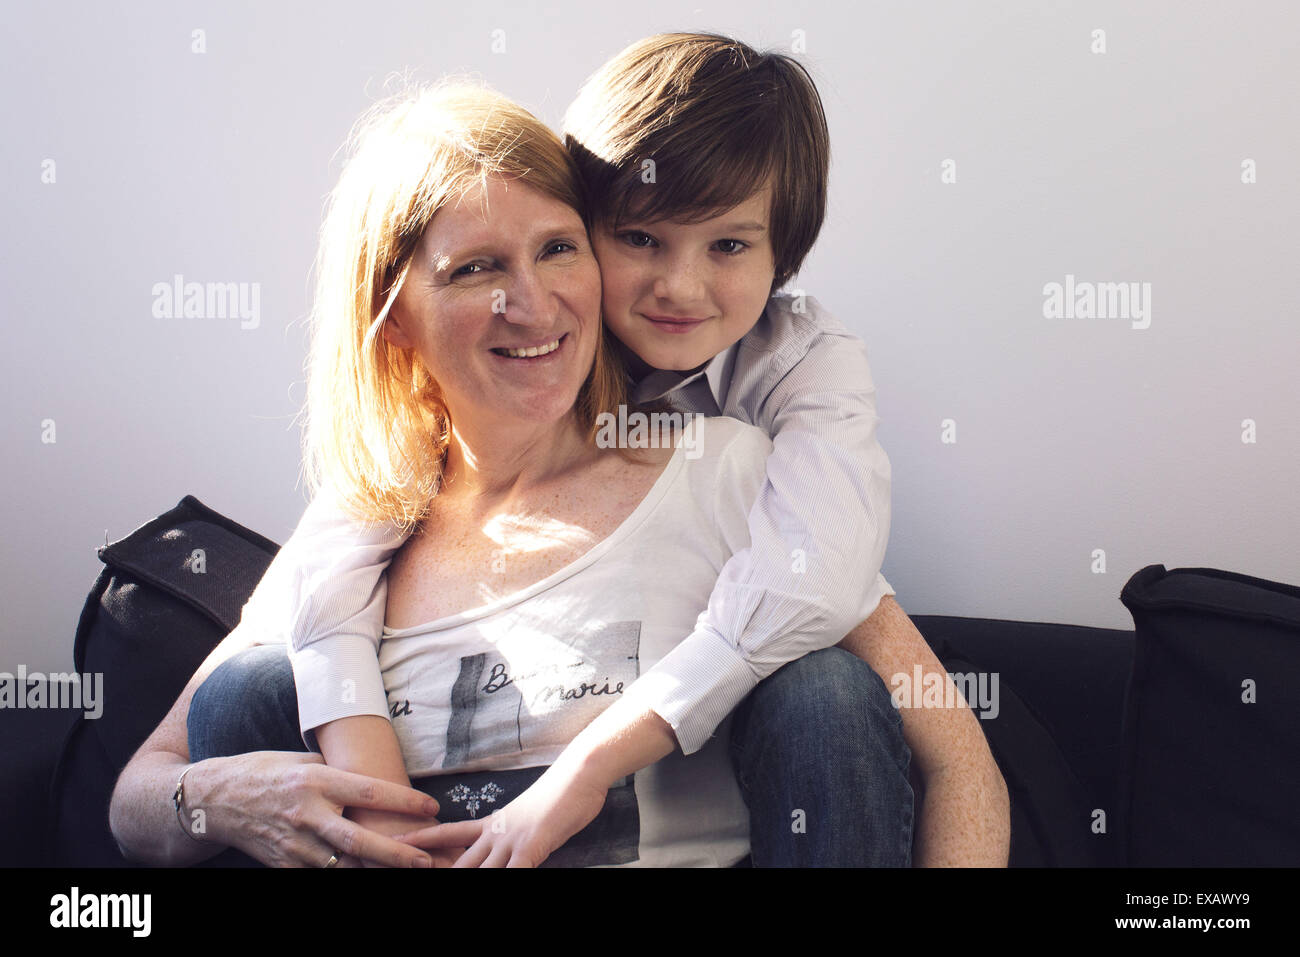 Mother and son, portrait - Stock Image